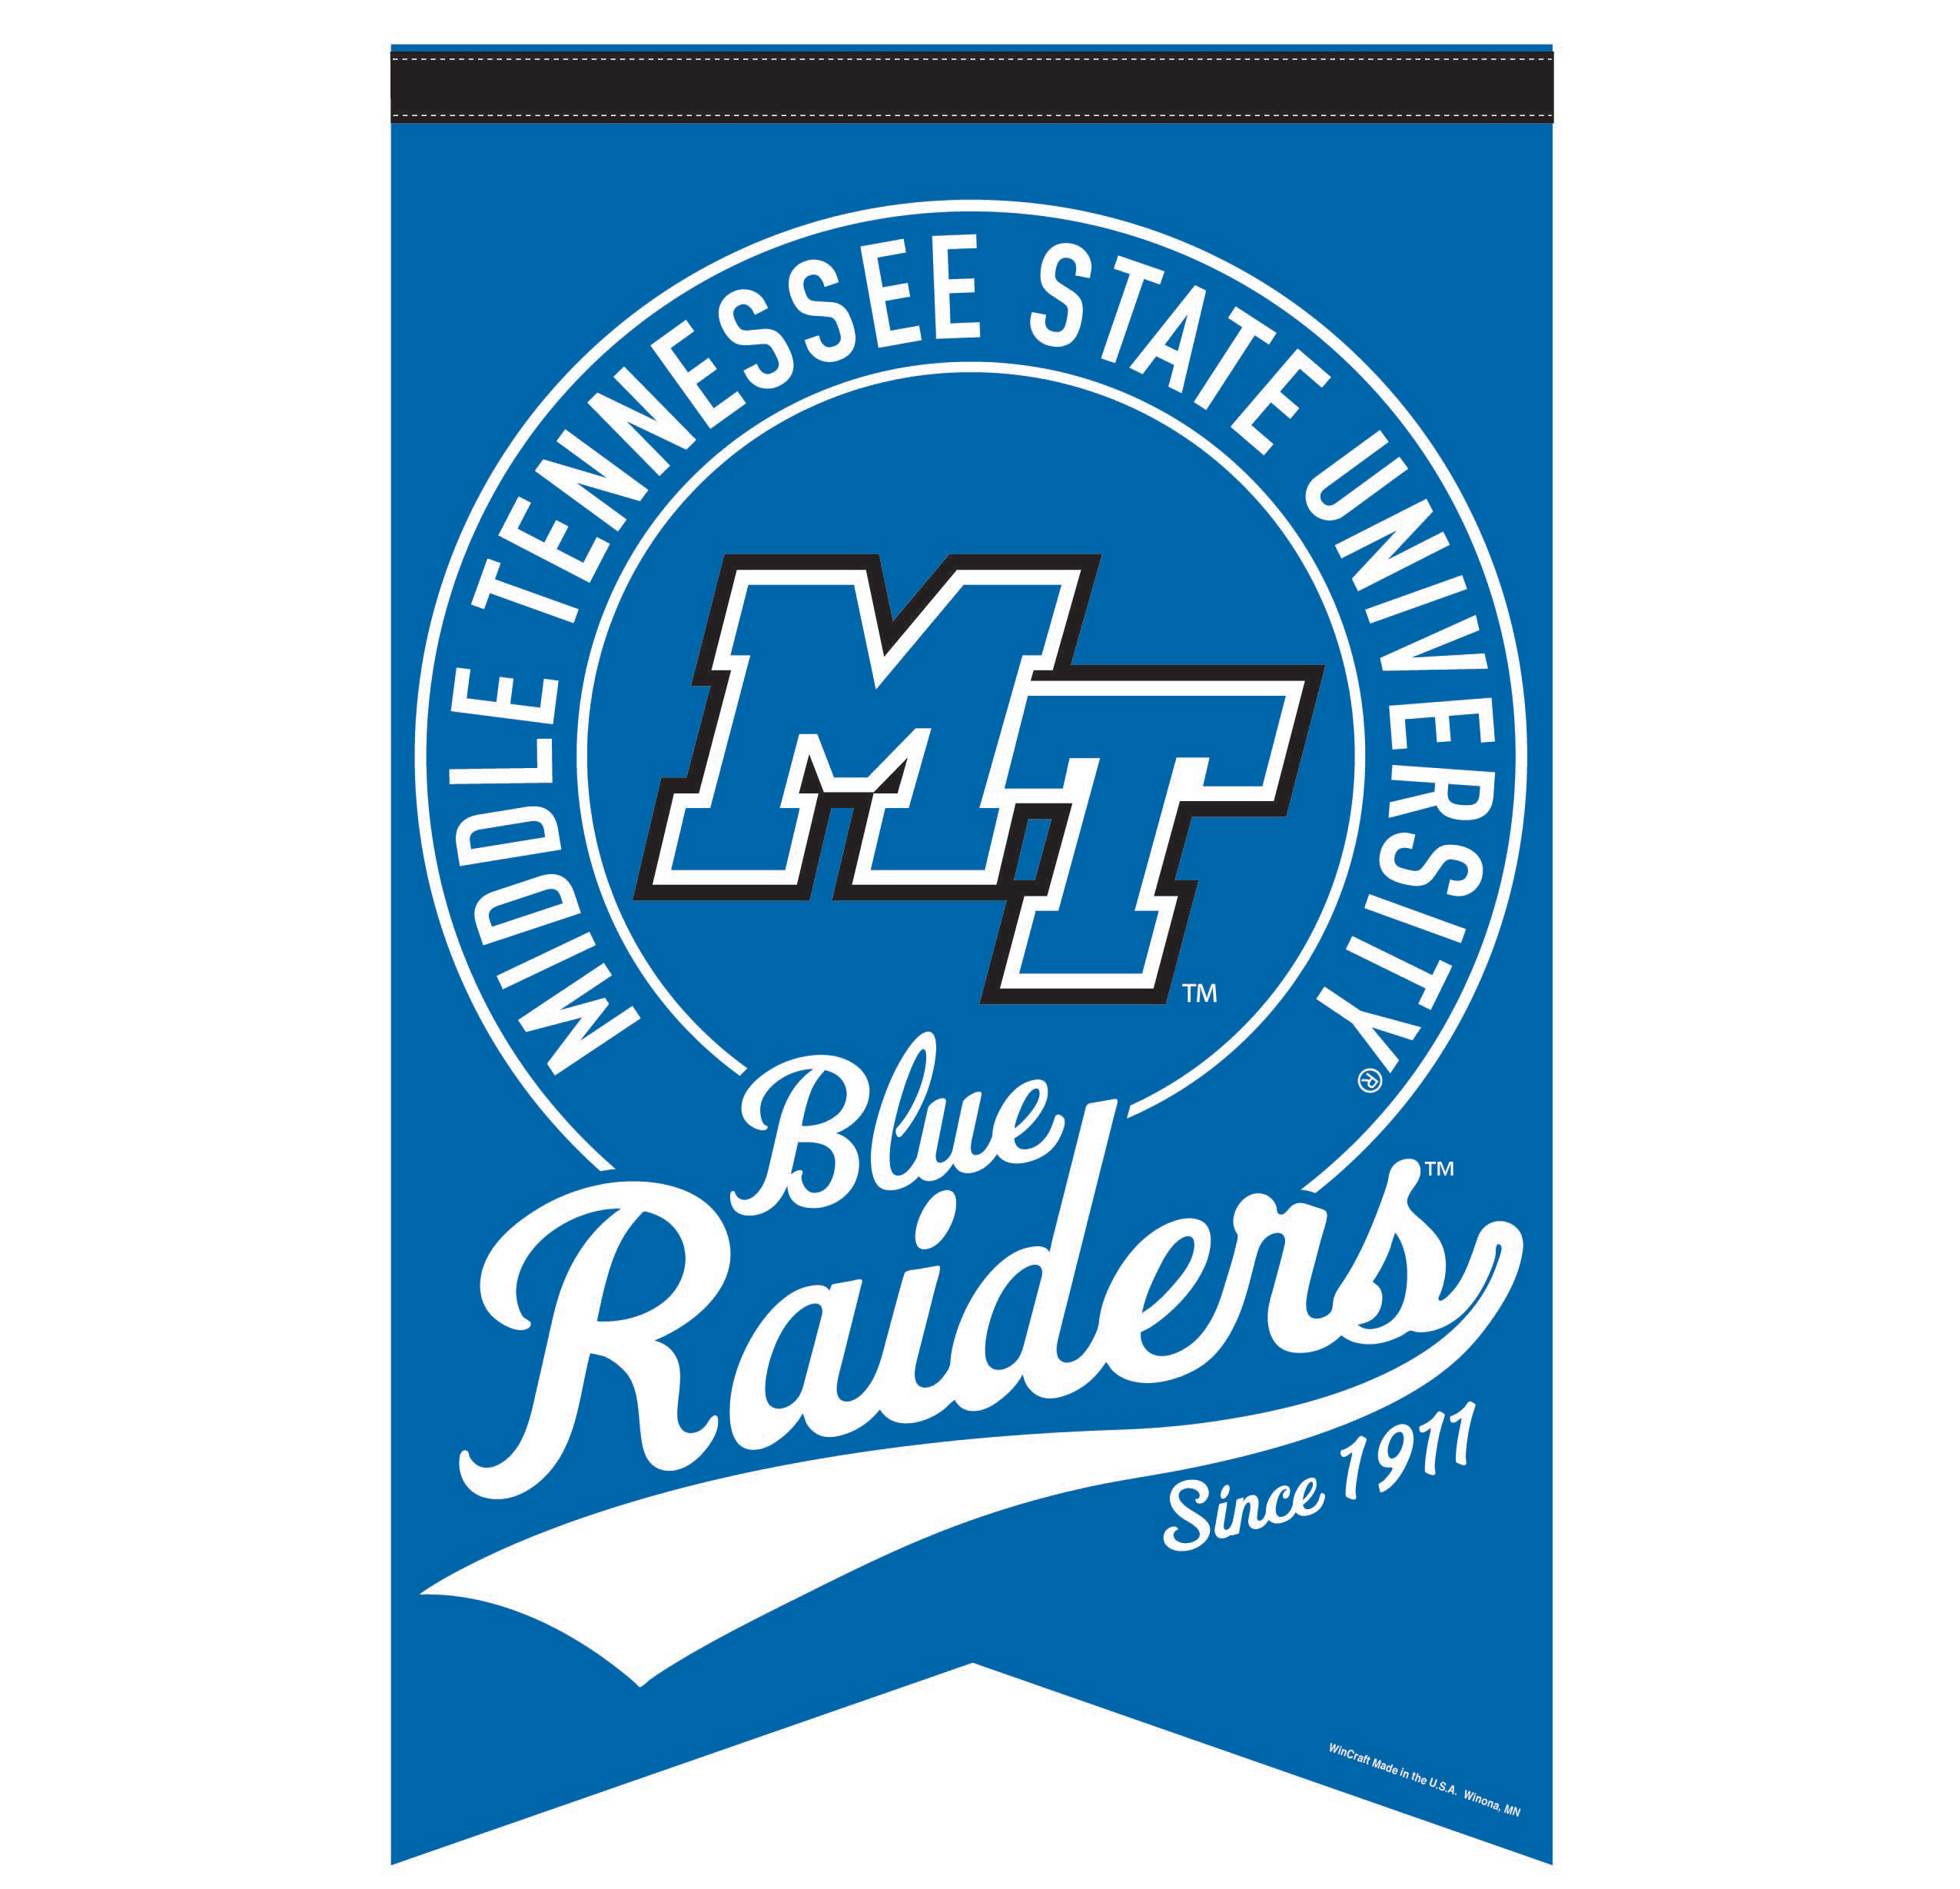 Middle Tennessee Blue Raiders Since 1911 17x26 Dovetail Banner